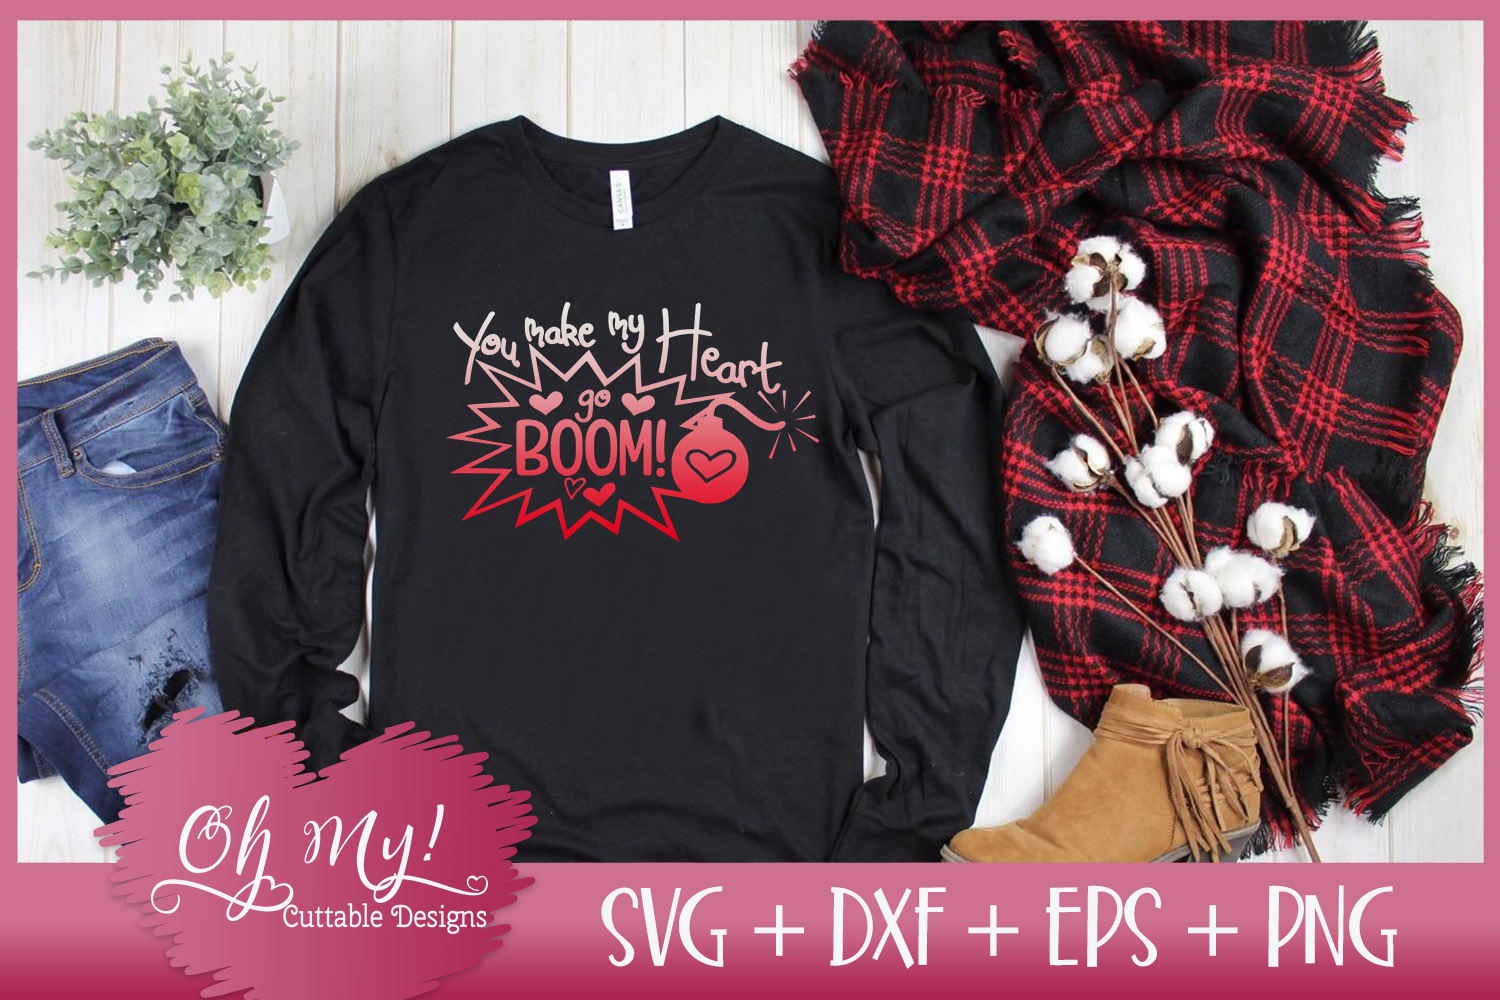 You Make My Heart Go Boom! - SVG EPS DXF Cutting File example image 2